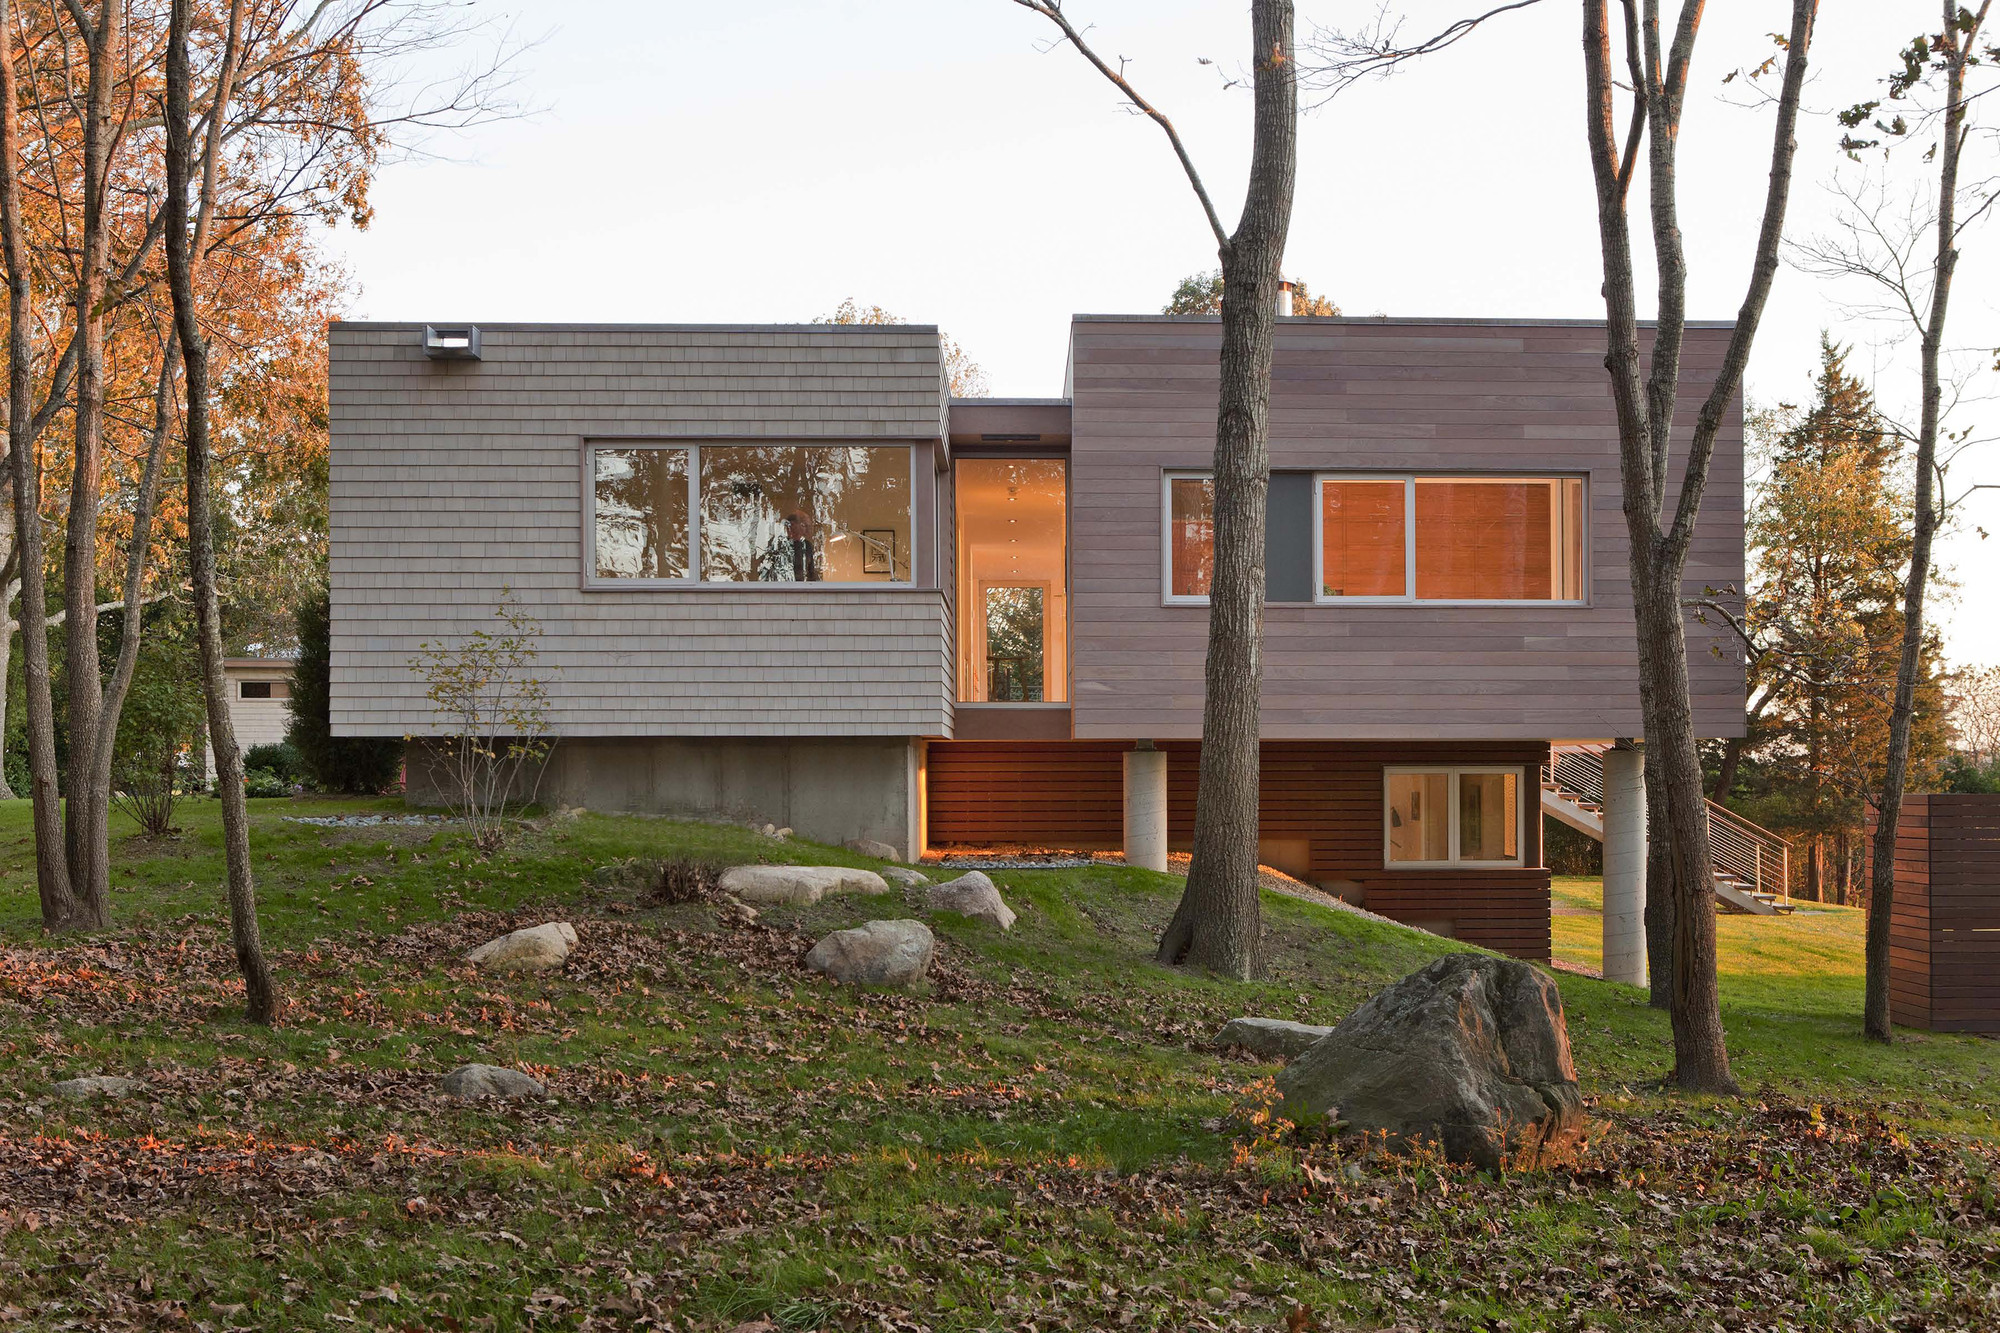 Casa en el Río Westport / RUHL WALKER Architects, © Peter Vanderwarker